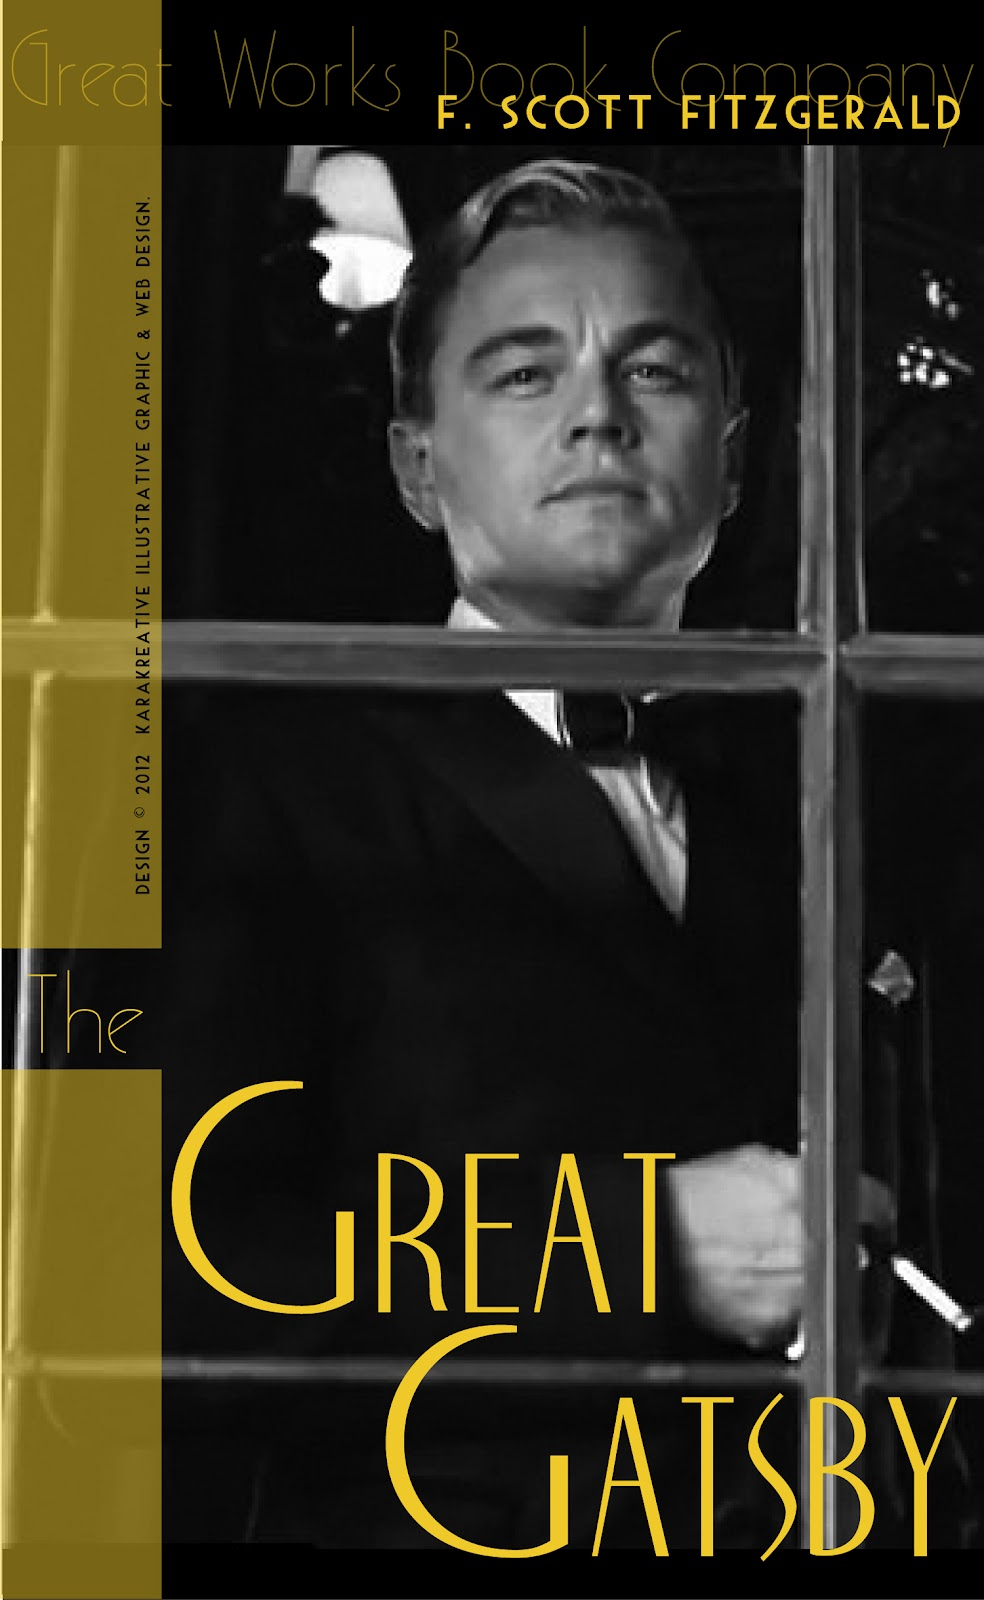 the moral responsibility of the three characters in the novel the great gatsby by f scott fitzgerald Essay, research paper: great gatsby morality  through its three main characters not one character is the most morally  the great gatsby, by f scott fitzgerald .